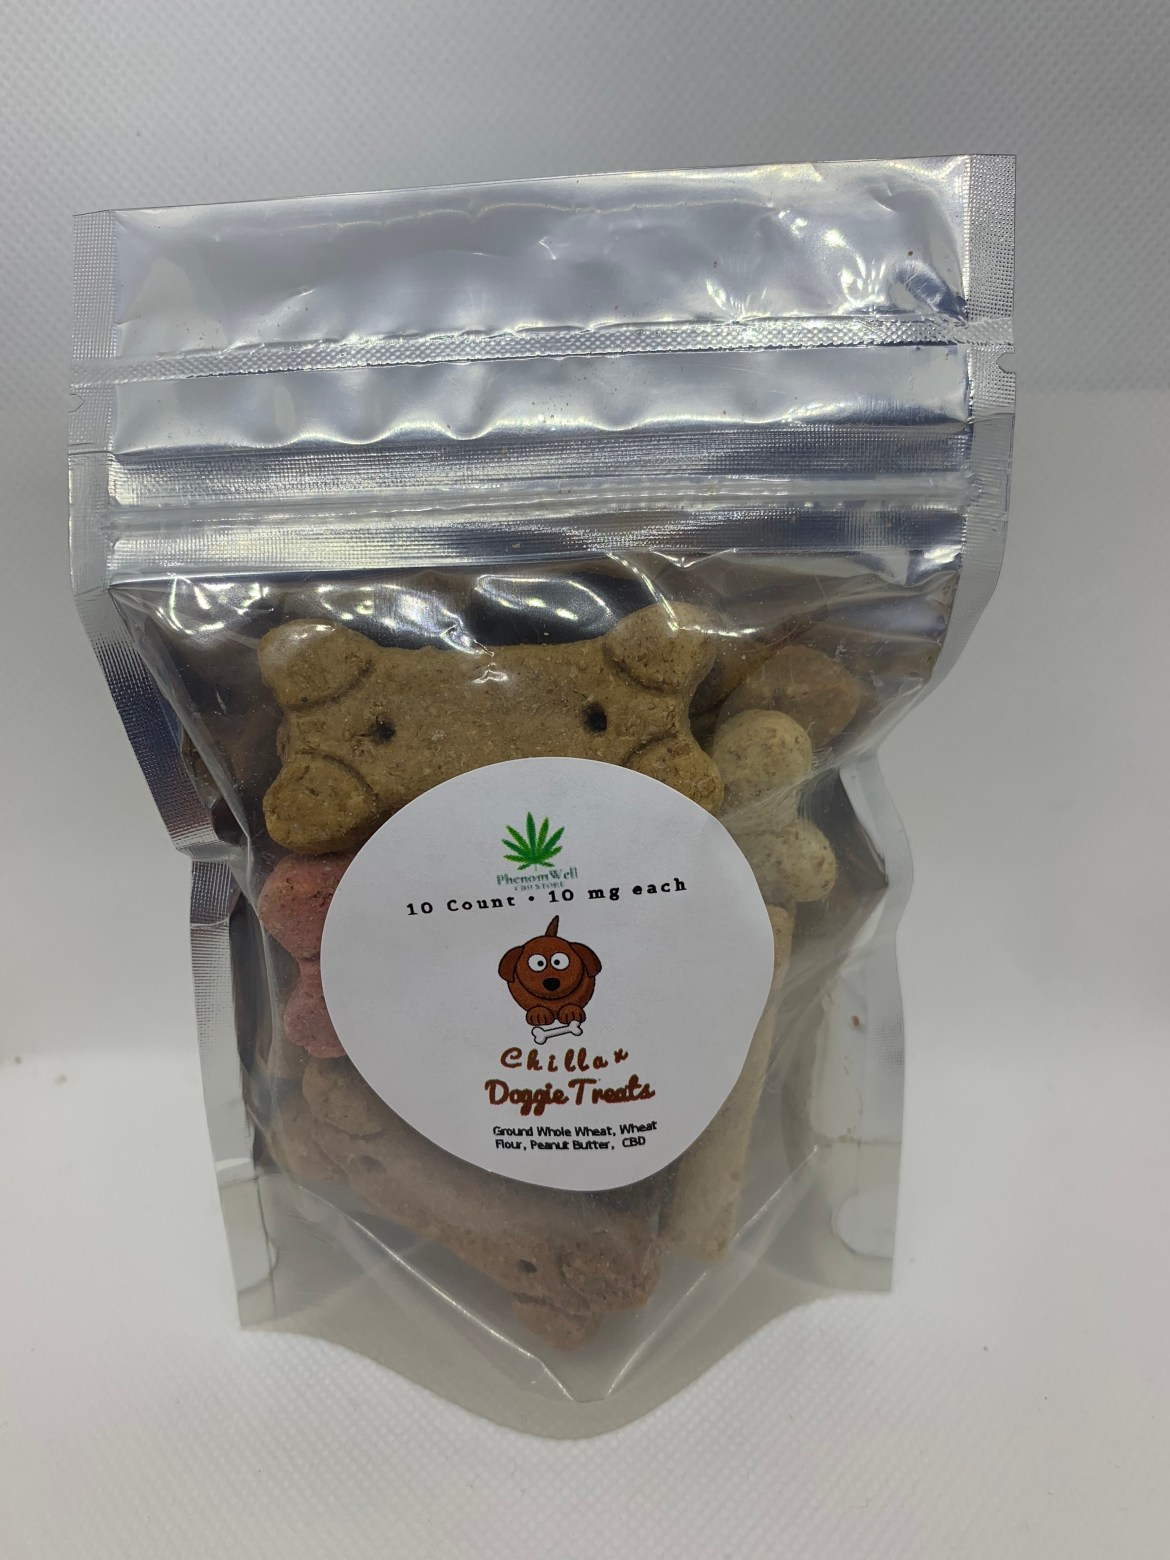 Chllax Doggie Treats - 10 count